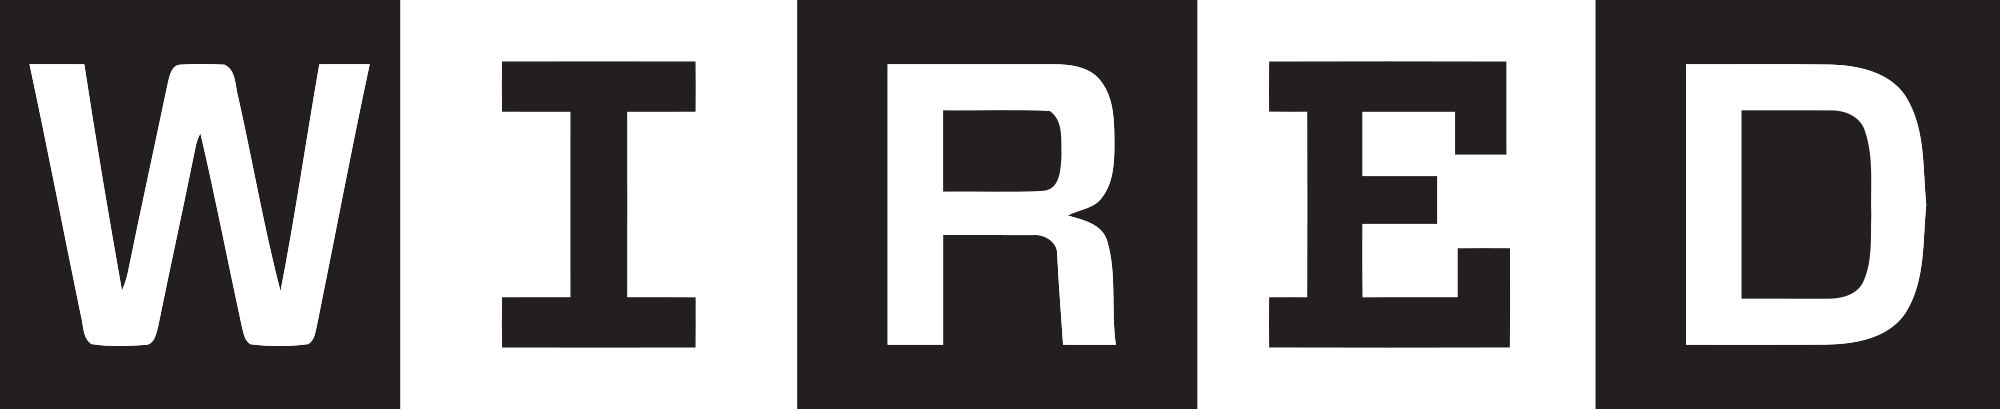 Wired Logo.png